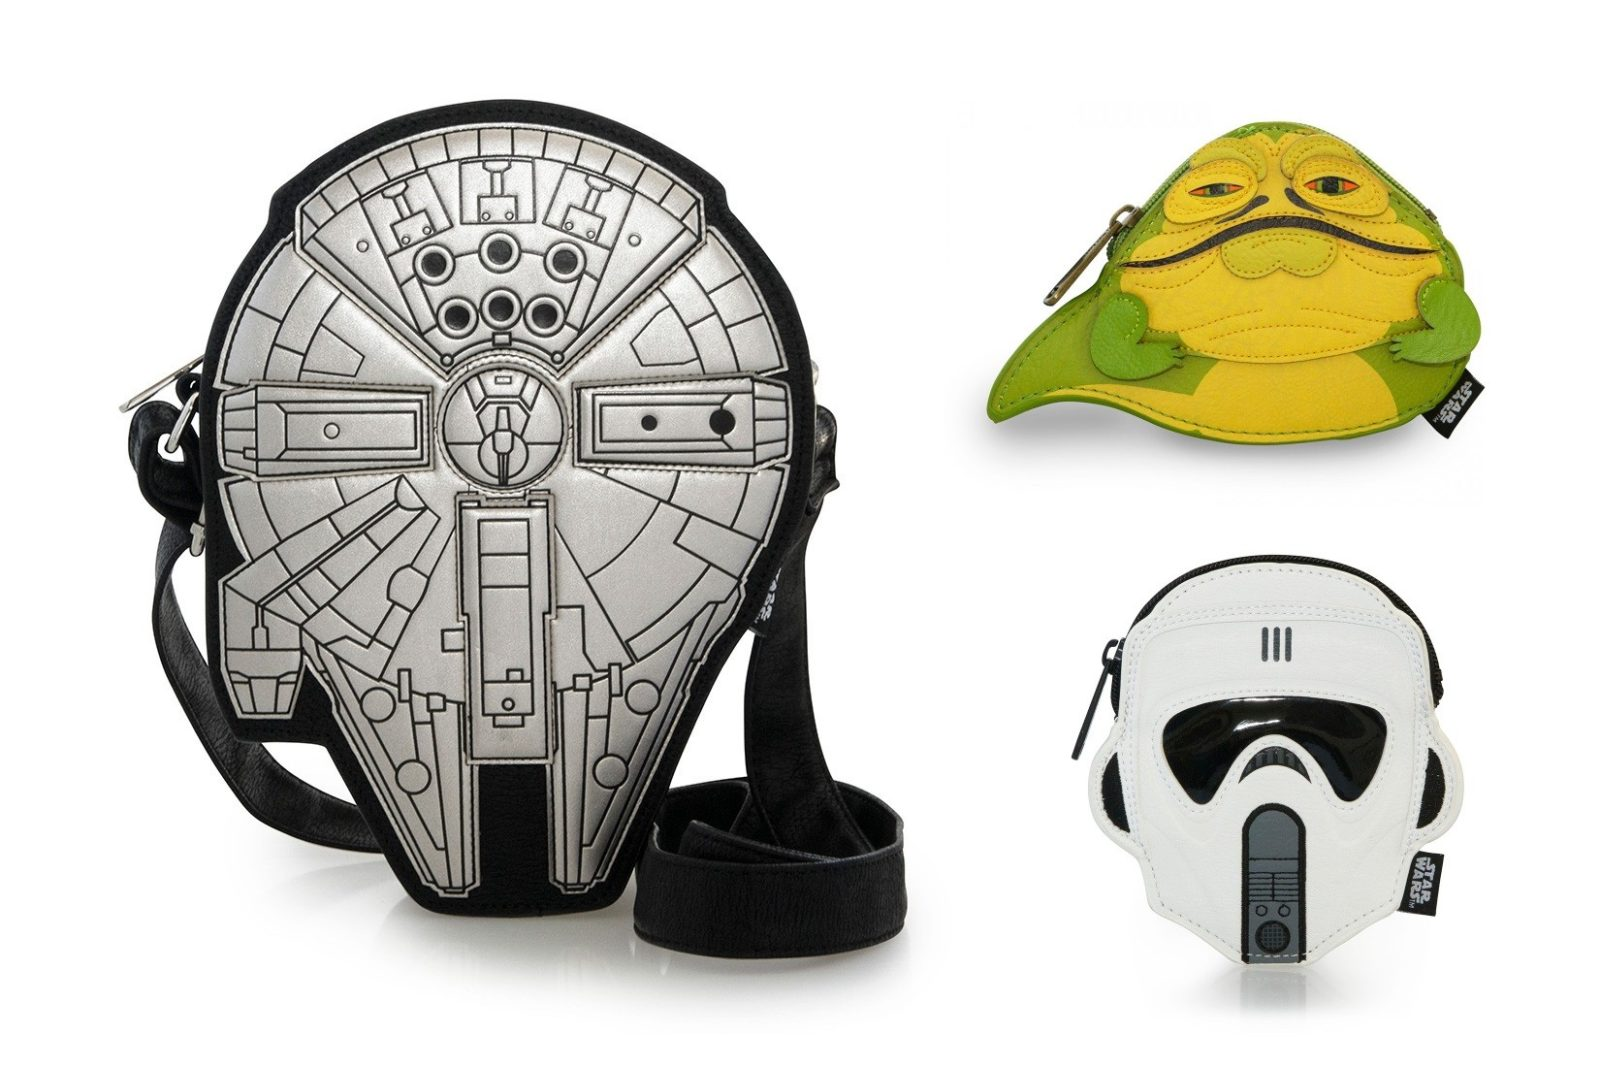 Loungefly x Star Wars new arrivals!